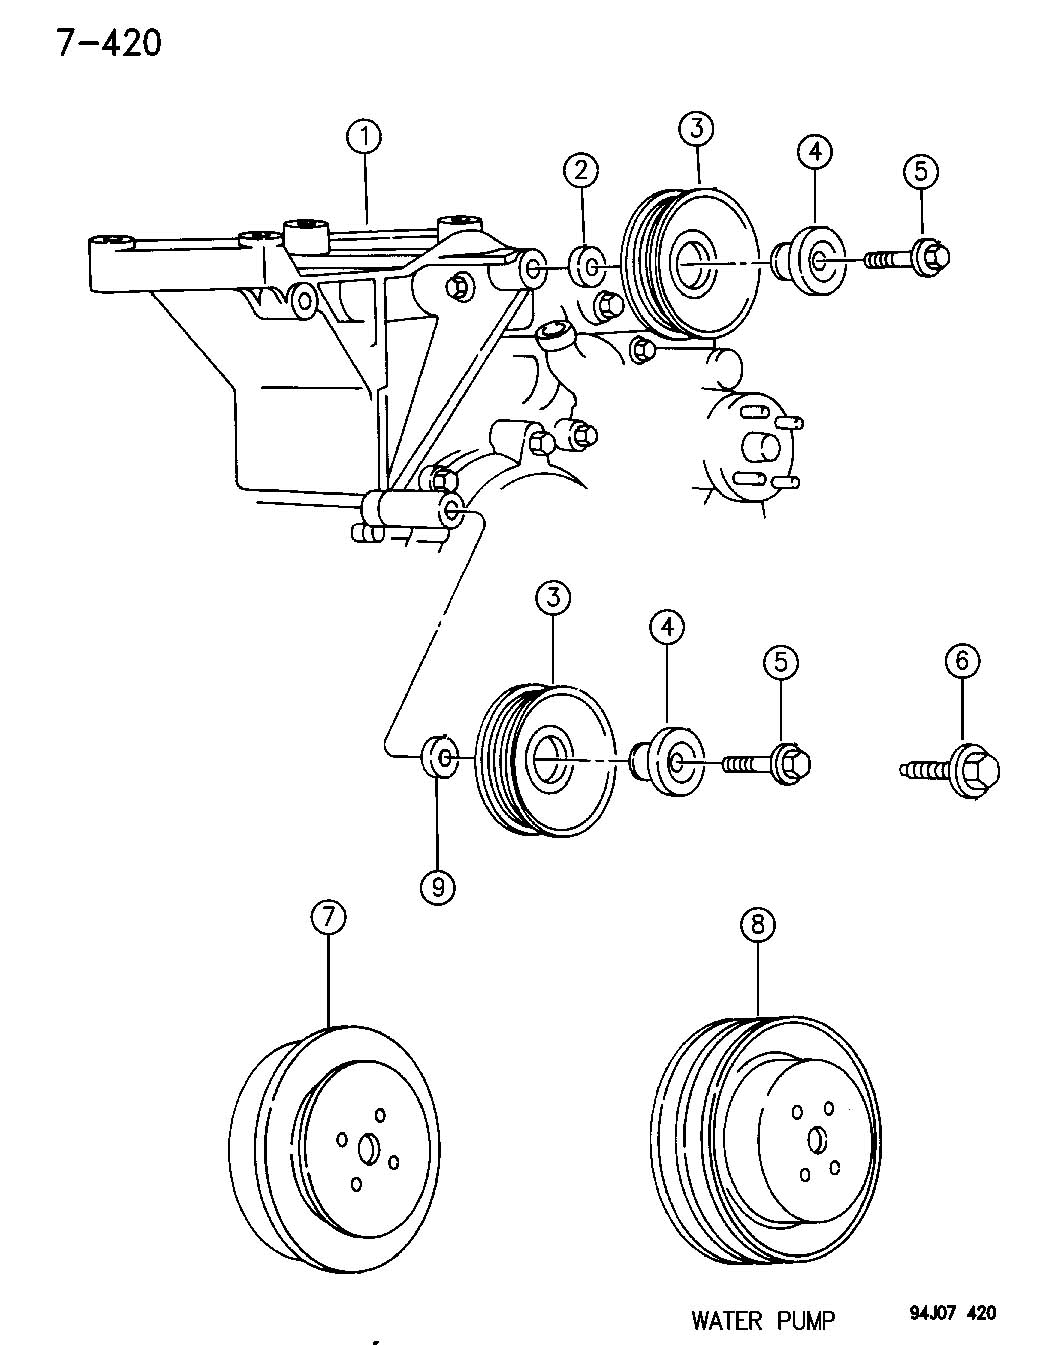 DRIVE PULLEYS 4.0 ENGINE ZJ, ZG BODY